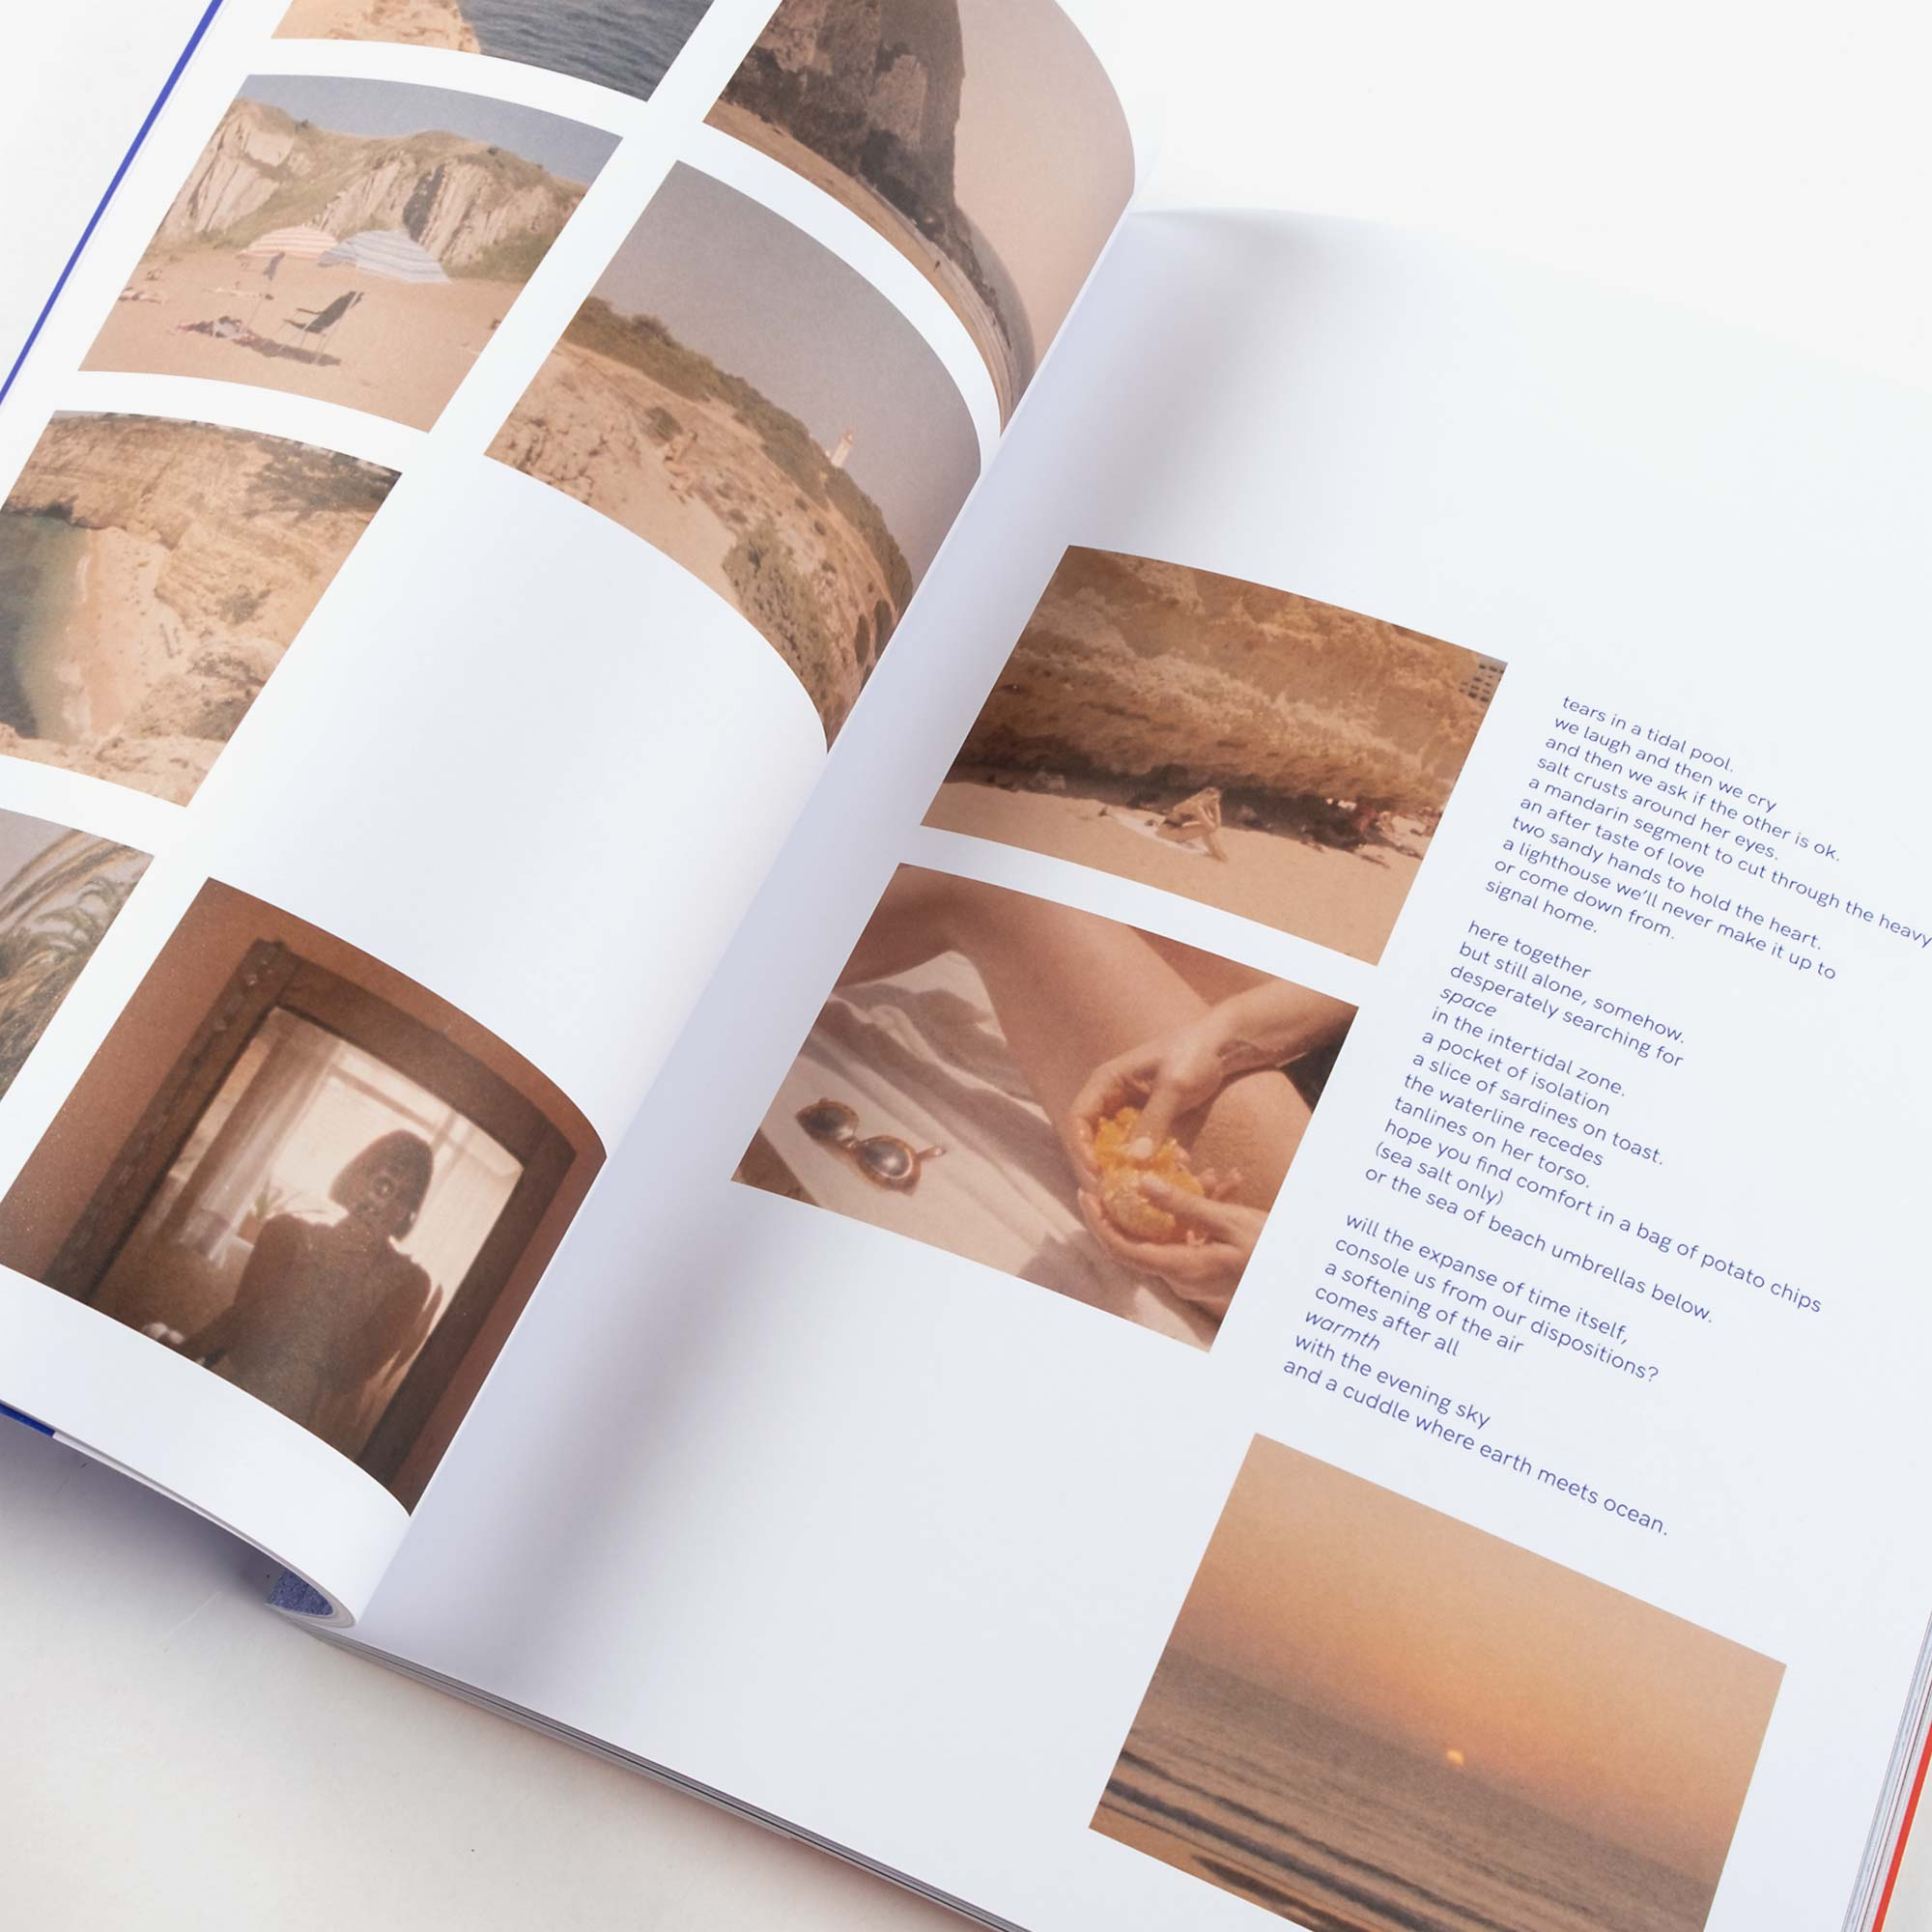 Platypus Publication Issue 02 - Salty 4